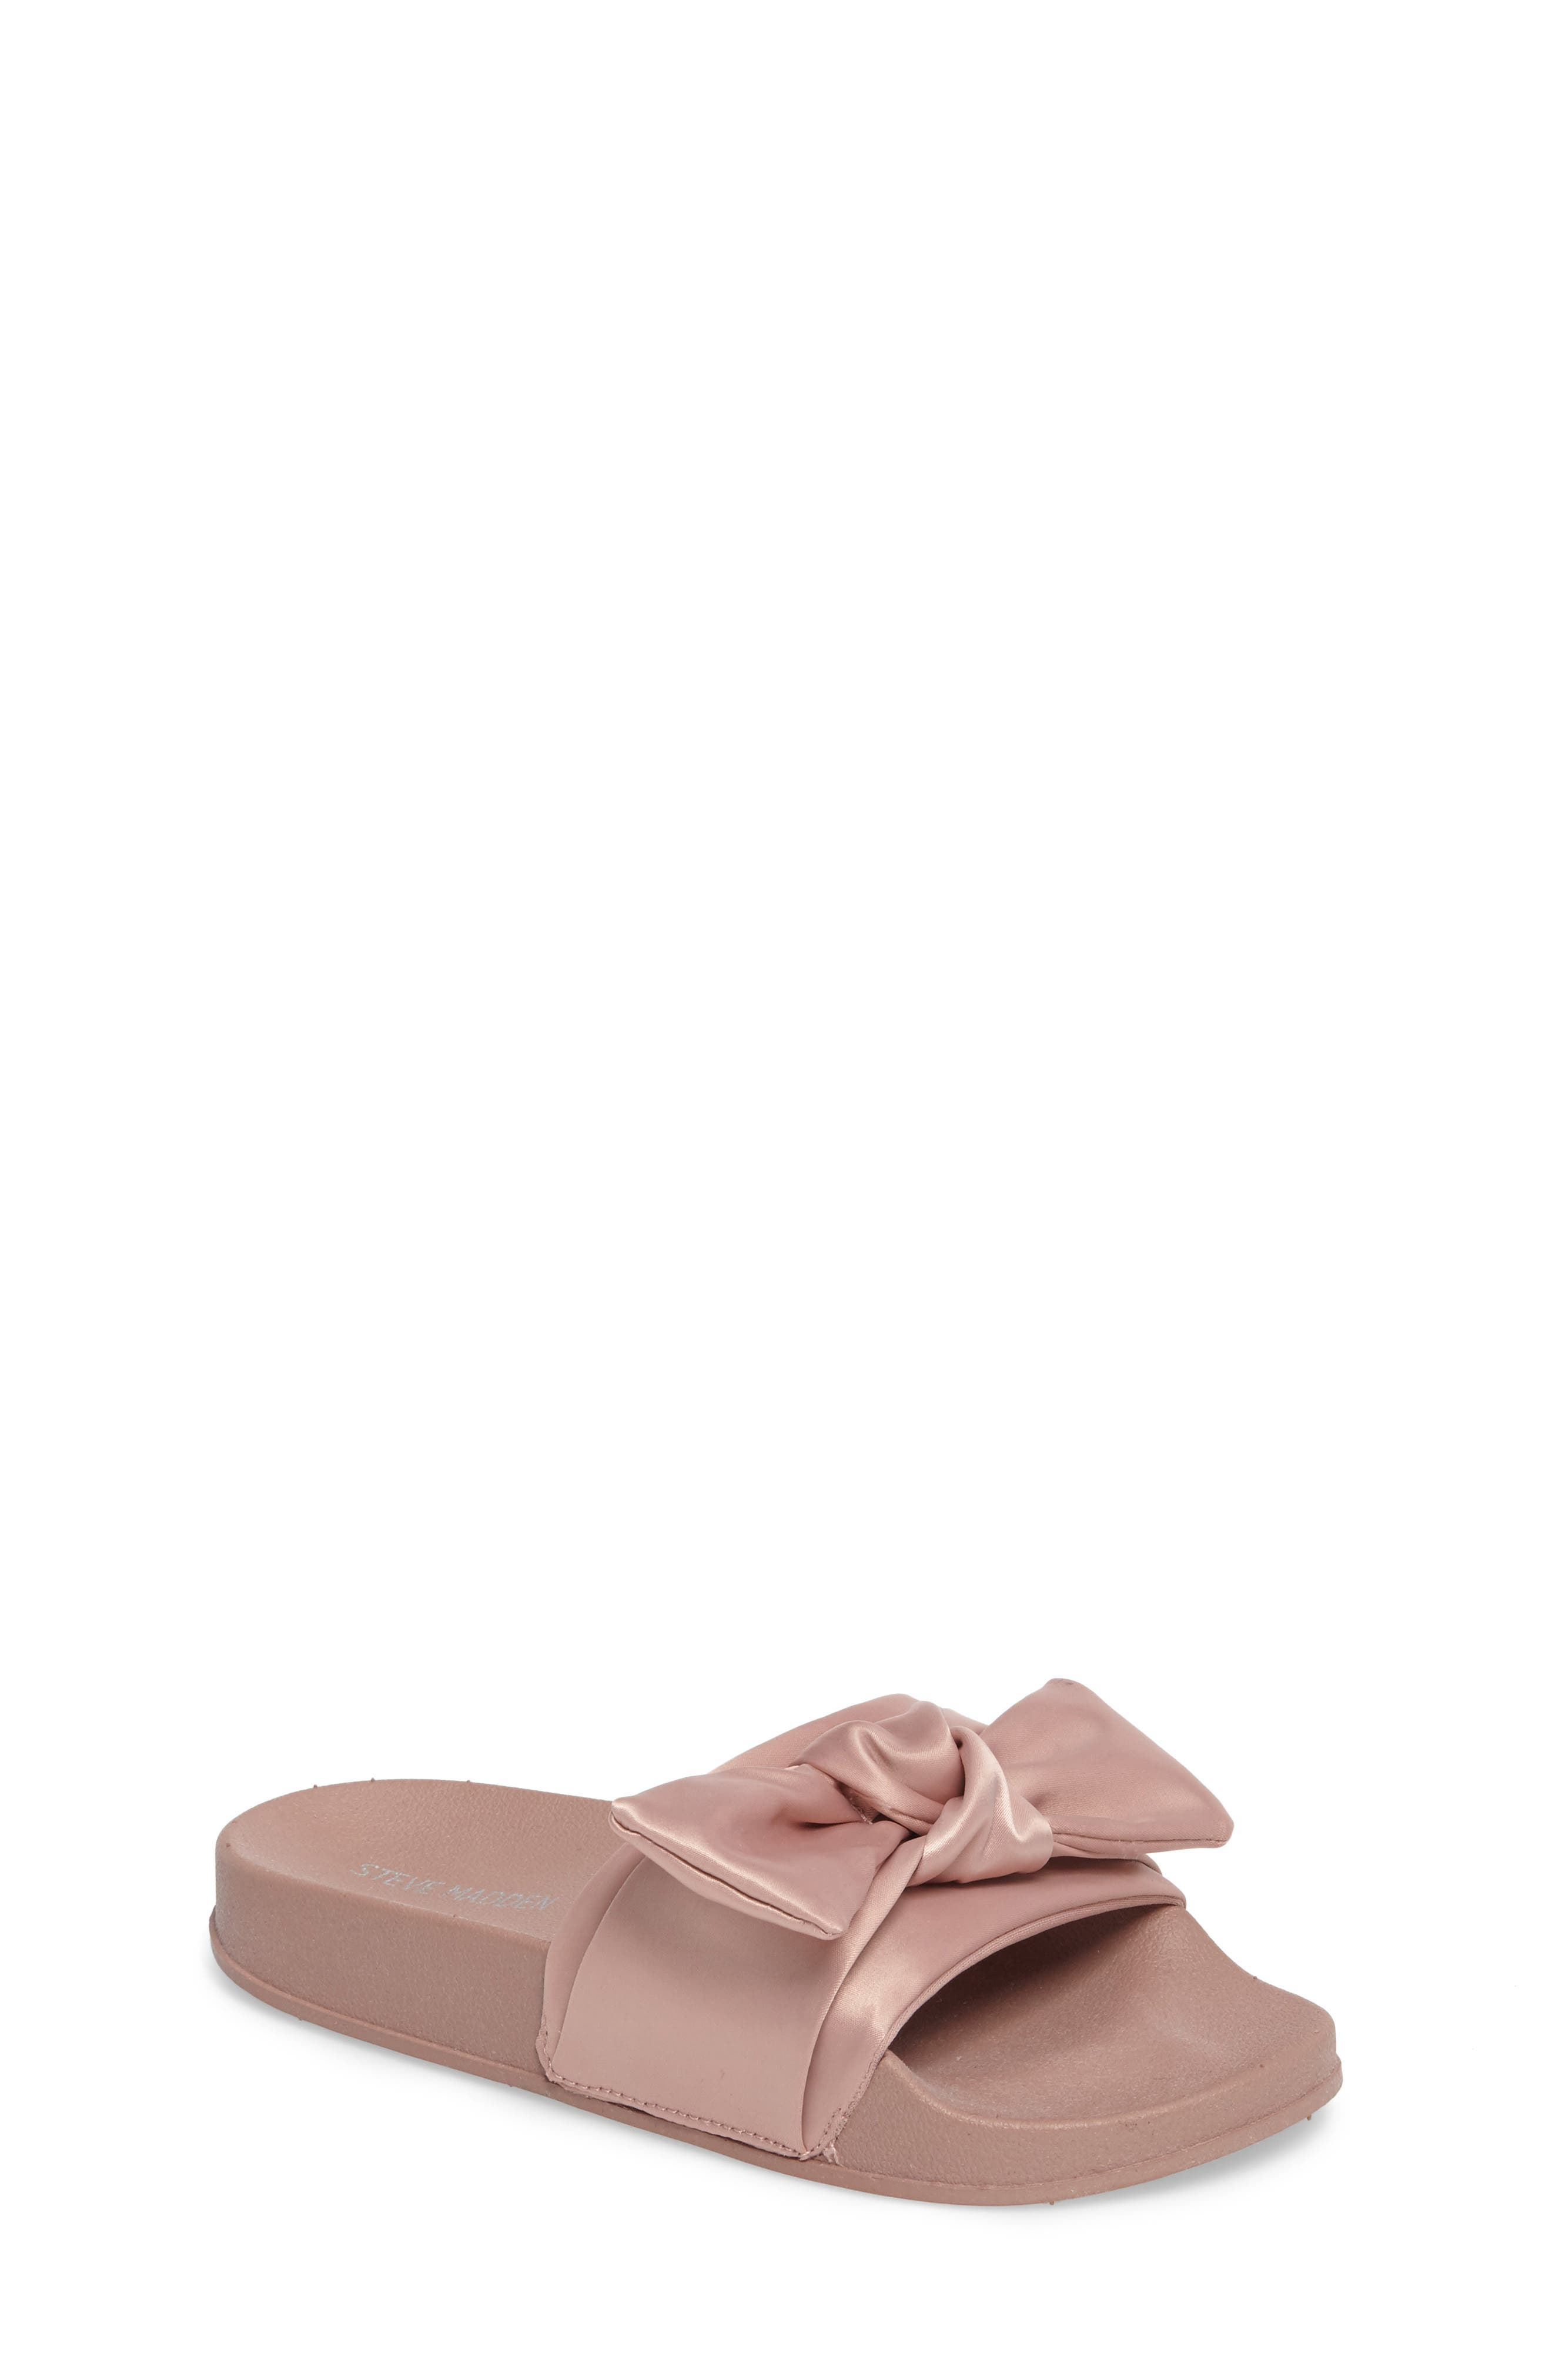 Steve Madden JSilky Slide Sandal (Little Kid & Big Kid)